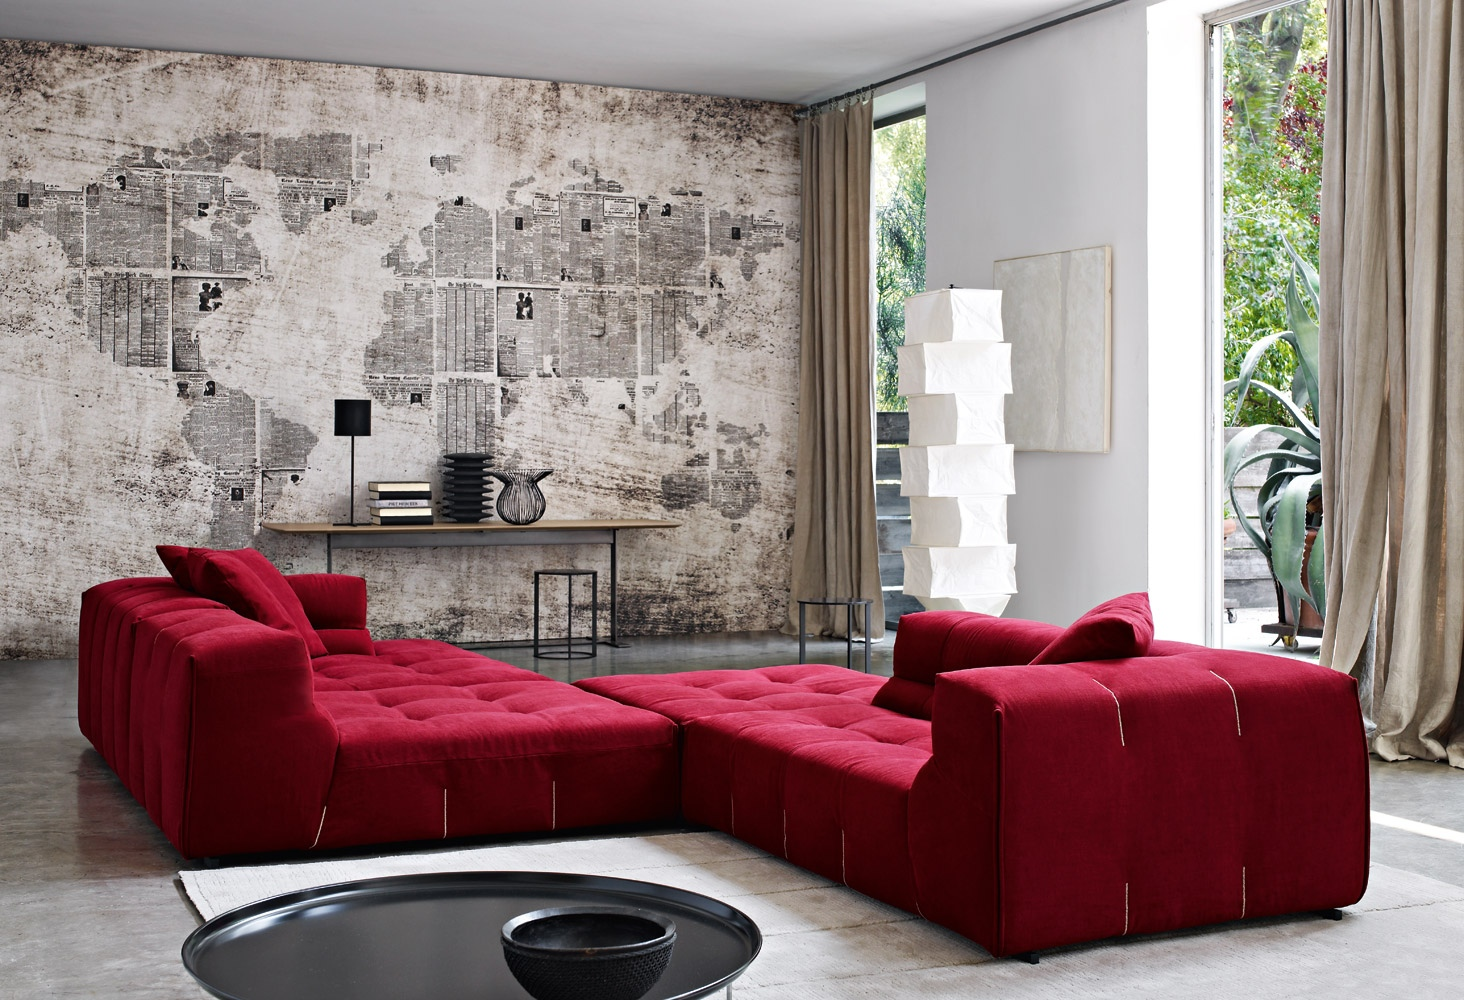 Sofa ideas Living room ideas with red sofa